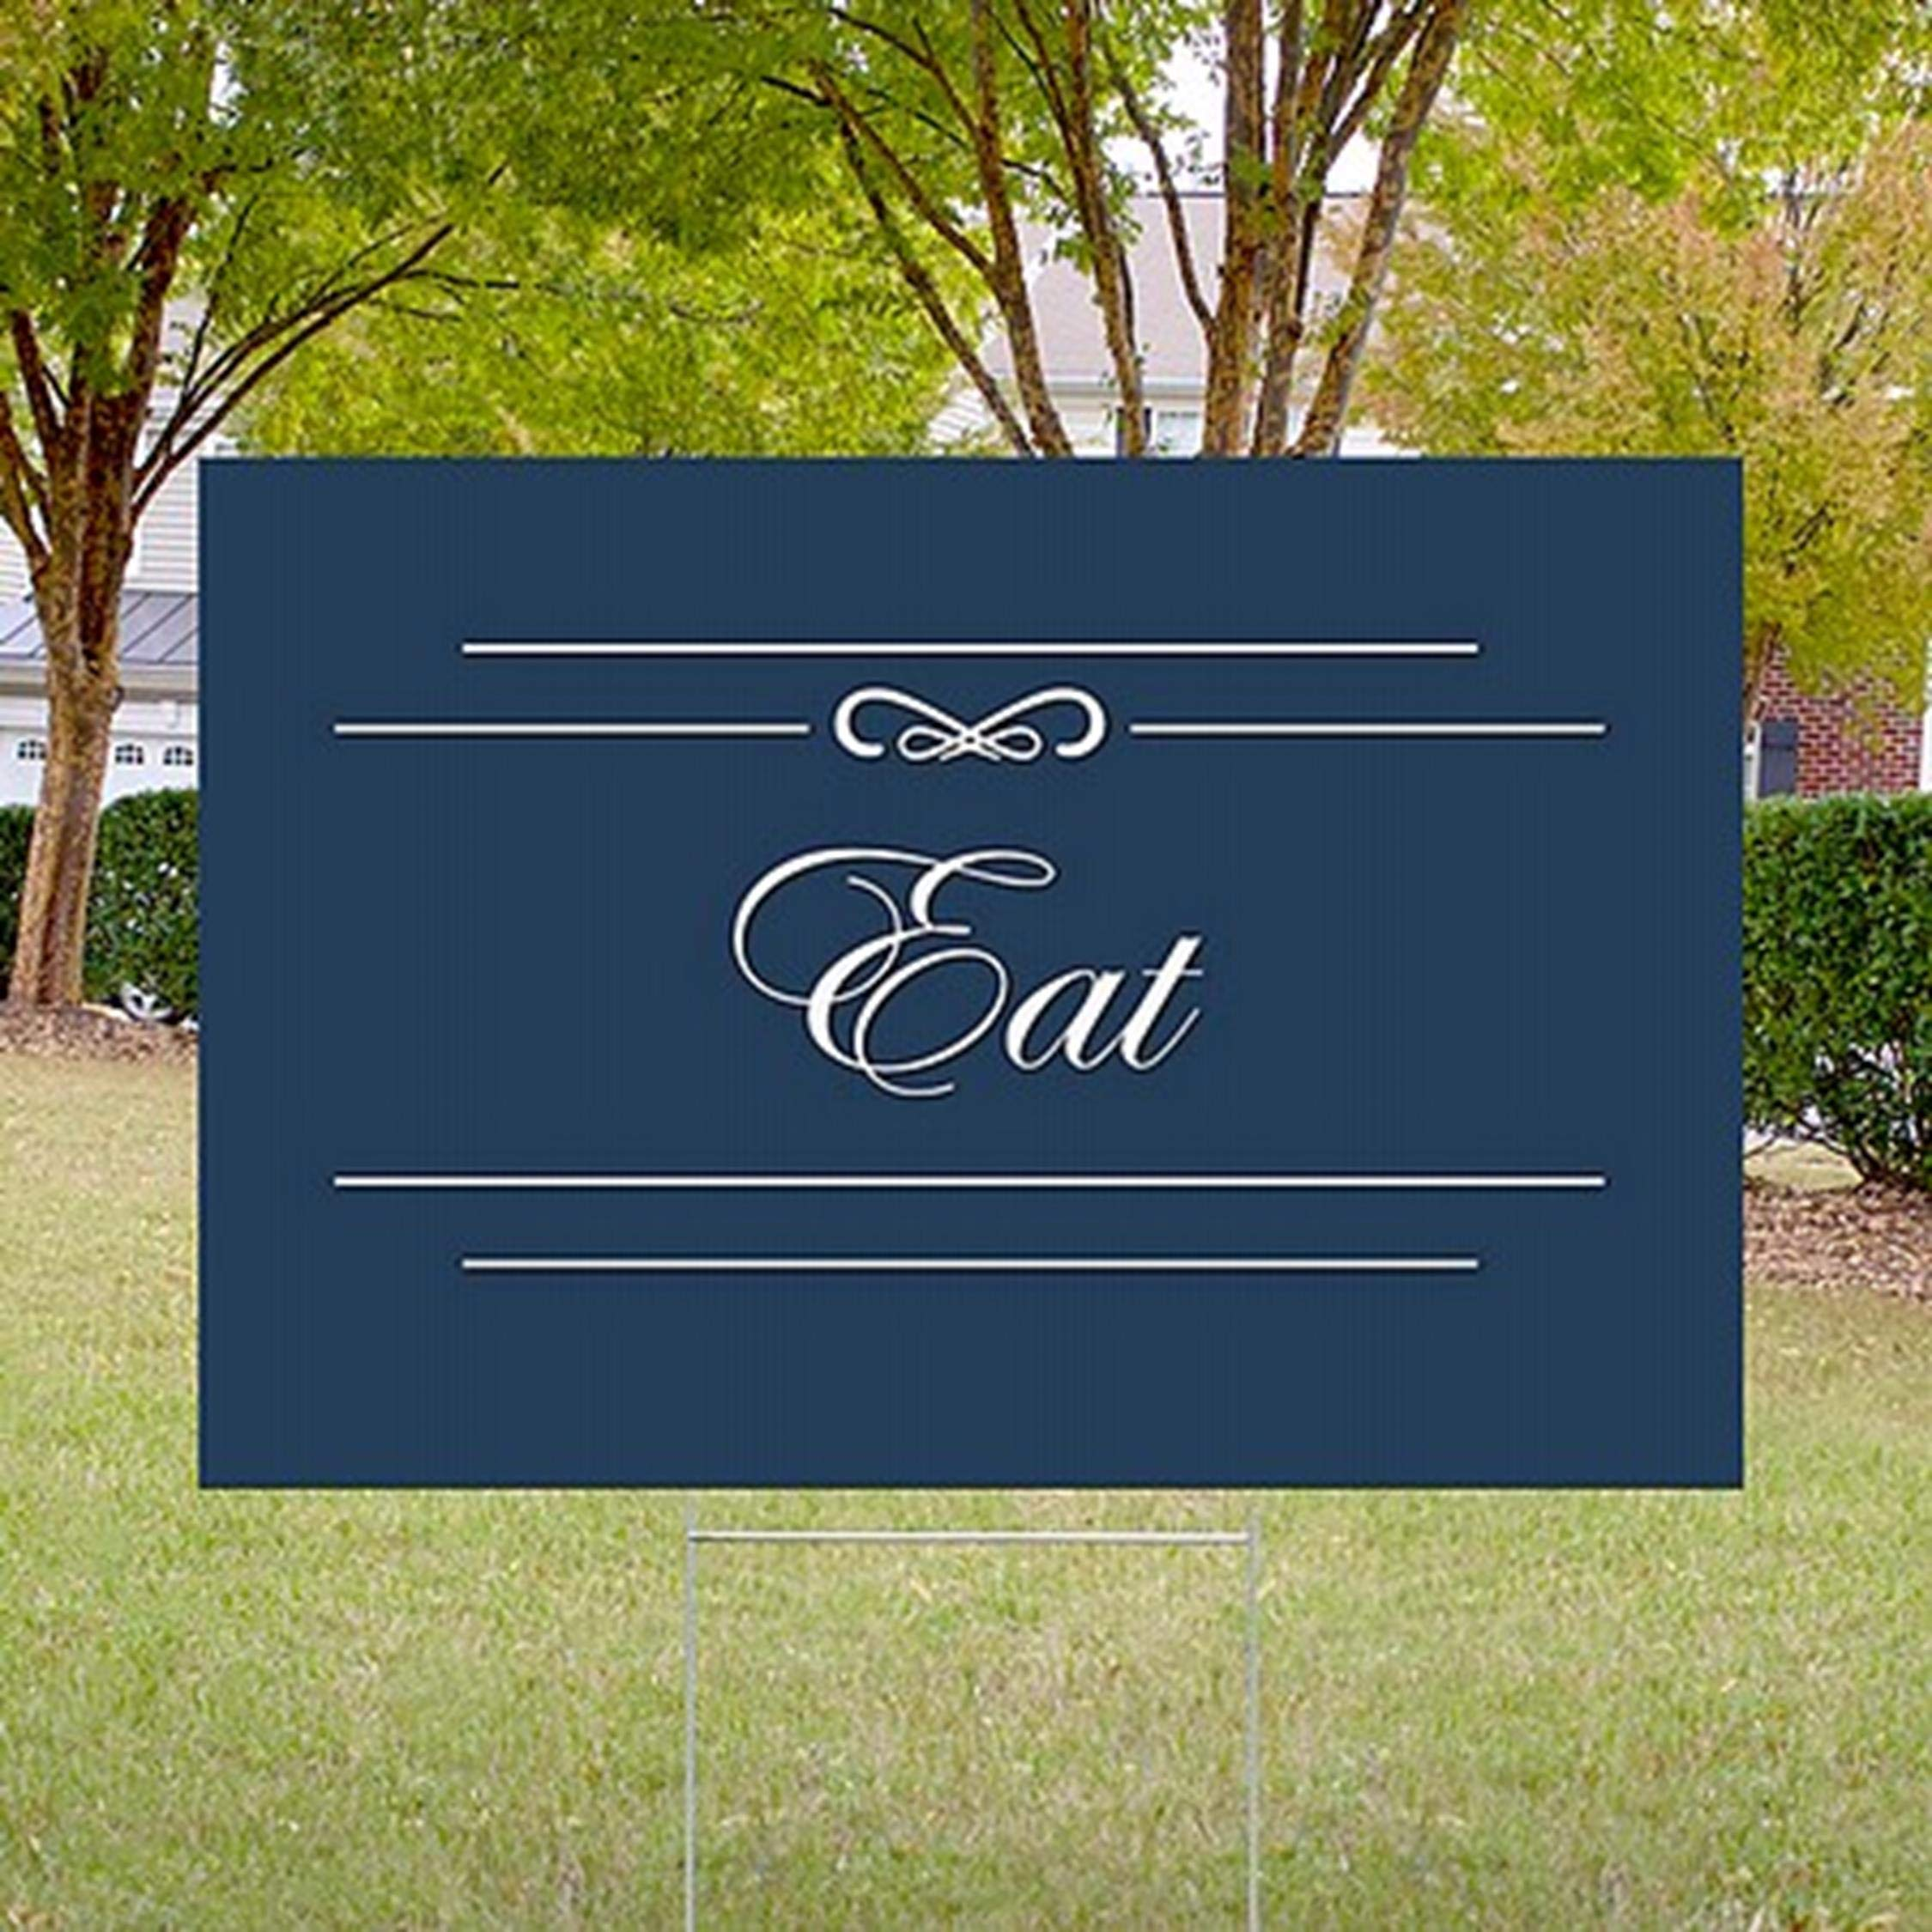 CGSignLab 5-Pack 18x12 Seasonal Sale Ghost Aged Blue Double-Sided Weather-Resistant Yard Sign